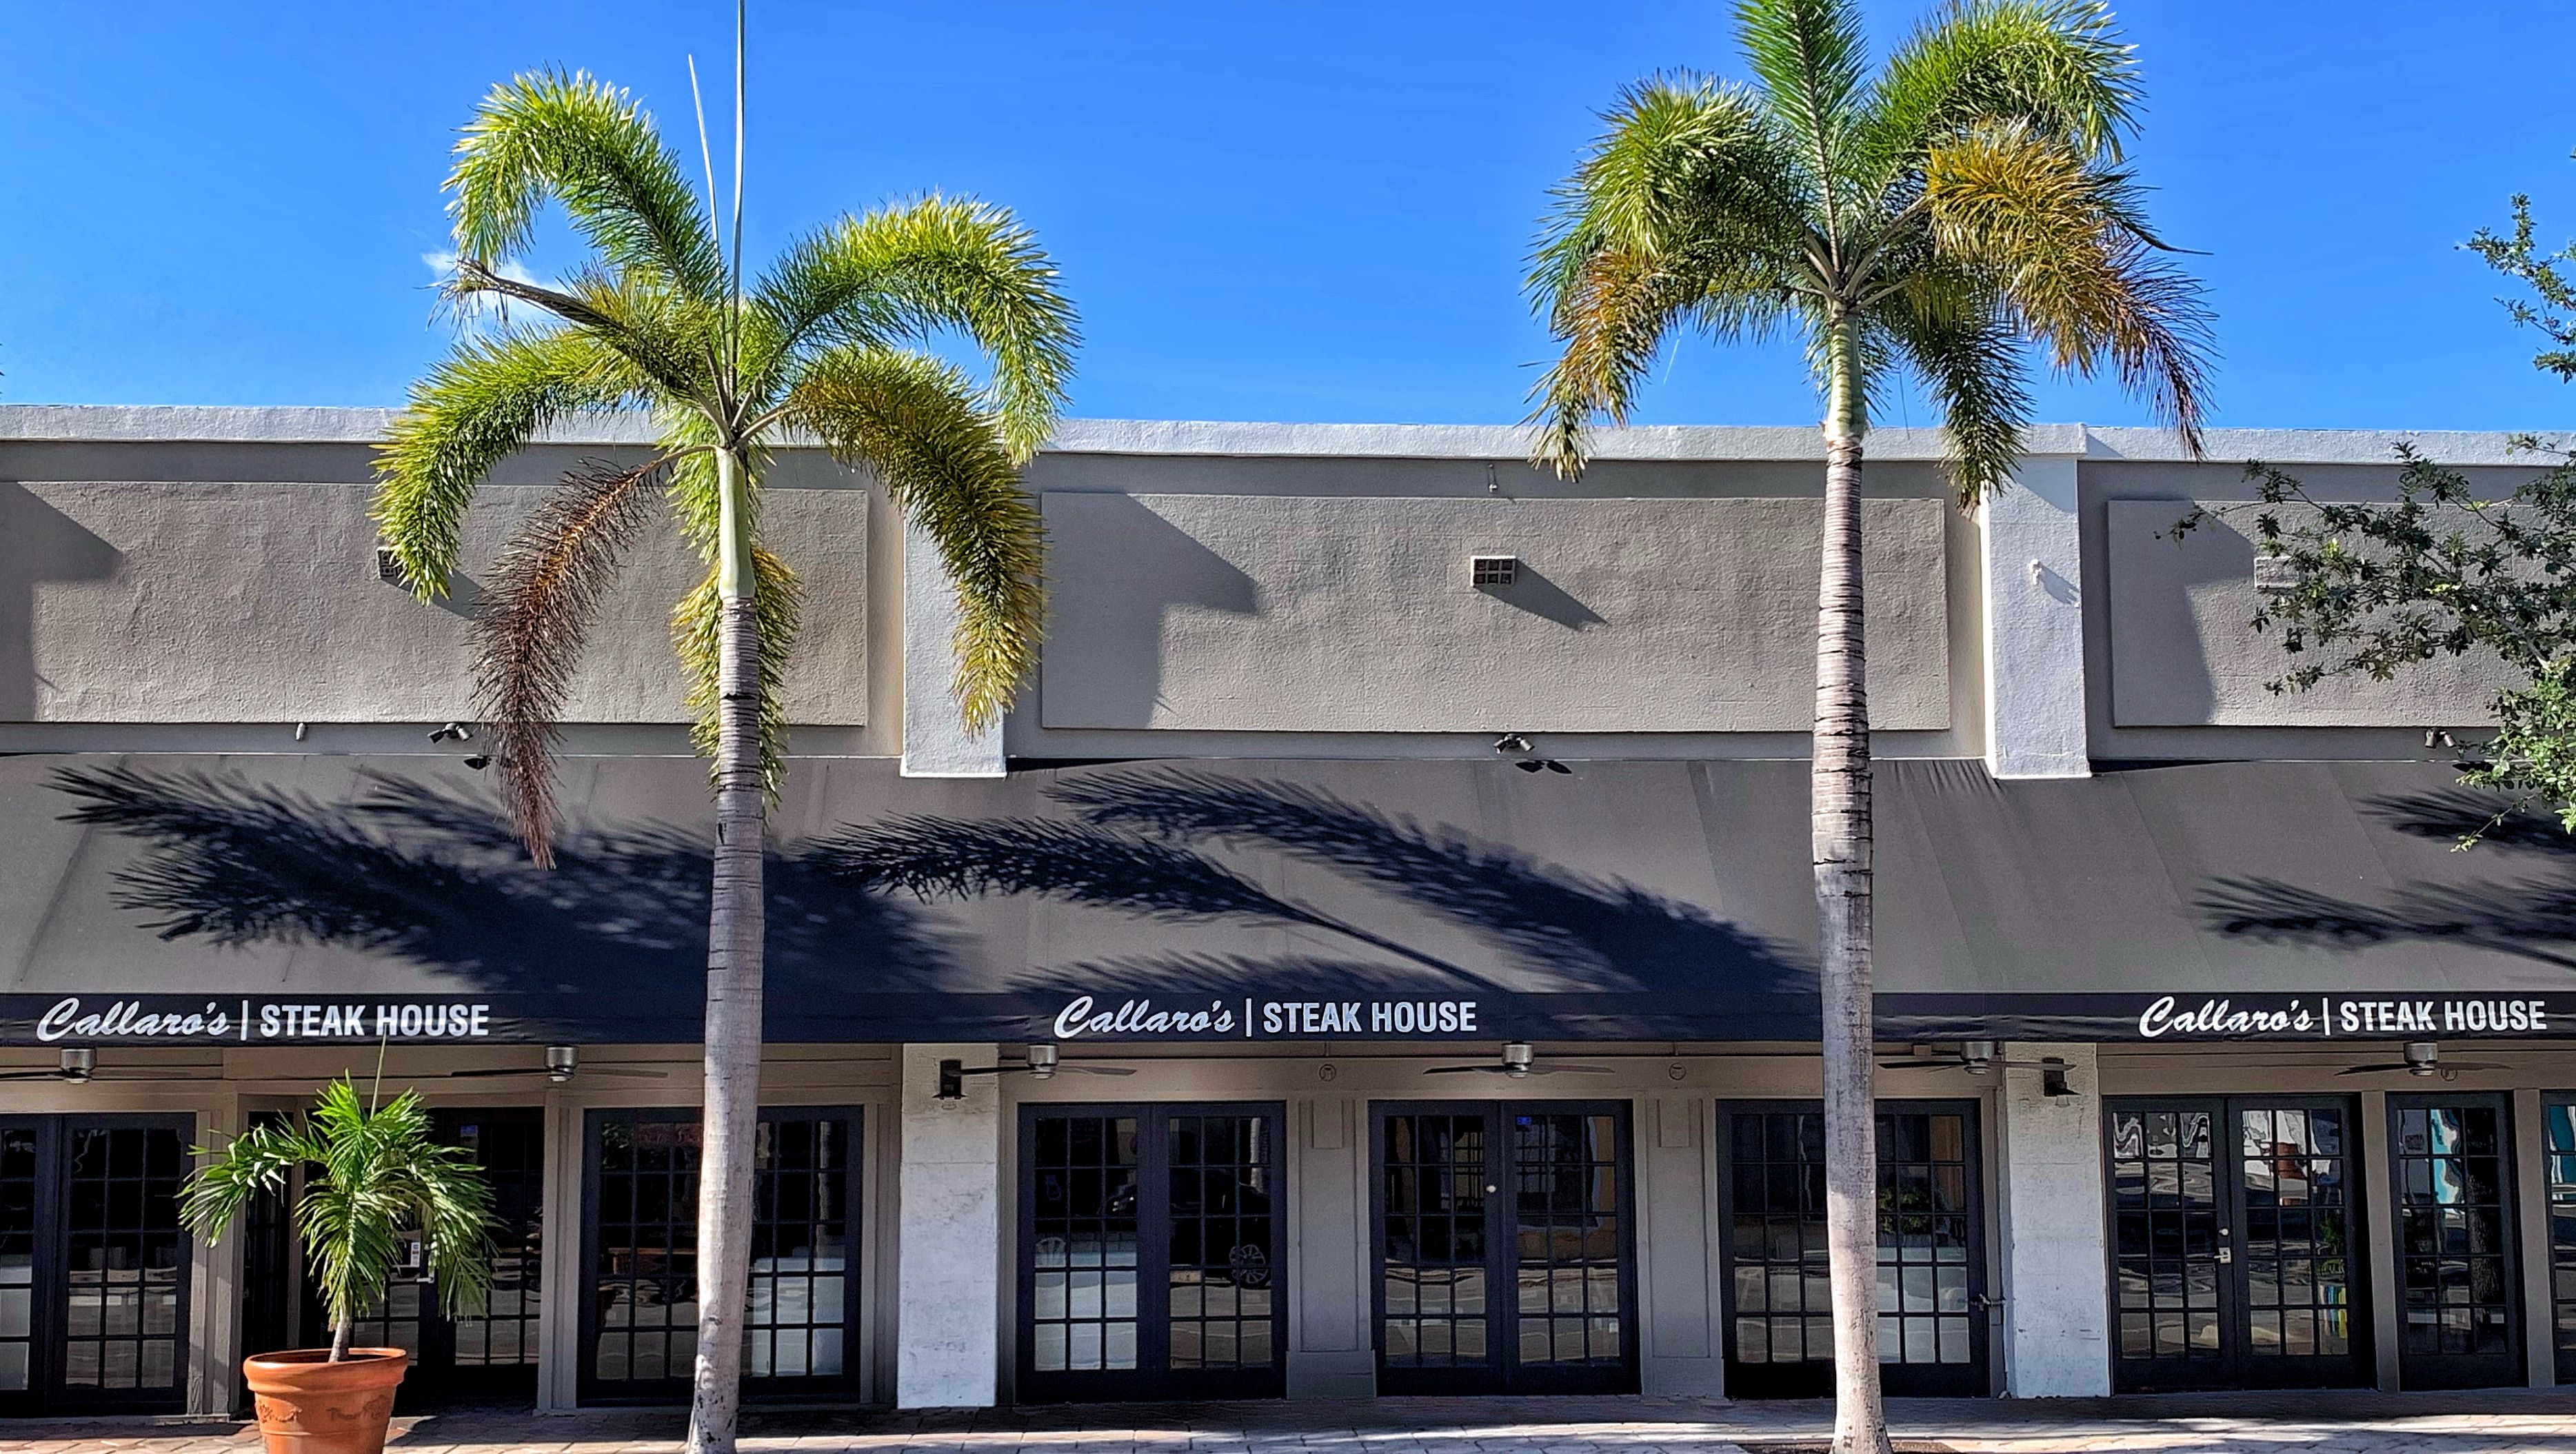 Custom black awnings on the front of Callaros Steak House in downtown Lake Worth Beach. This classic style of awning allows for tables for patrons to eat outside, while being protected from the sun on hot Florida summer days or from the afternoon rainstorms. The front panel allows for custom and consistent branding #southflorida #palmbeach #lakeworthbeach #awning #steakhouse #restaurants